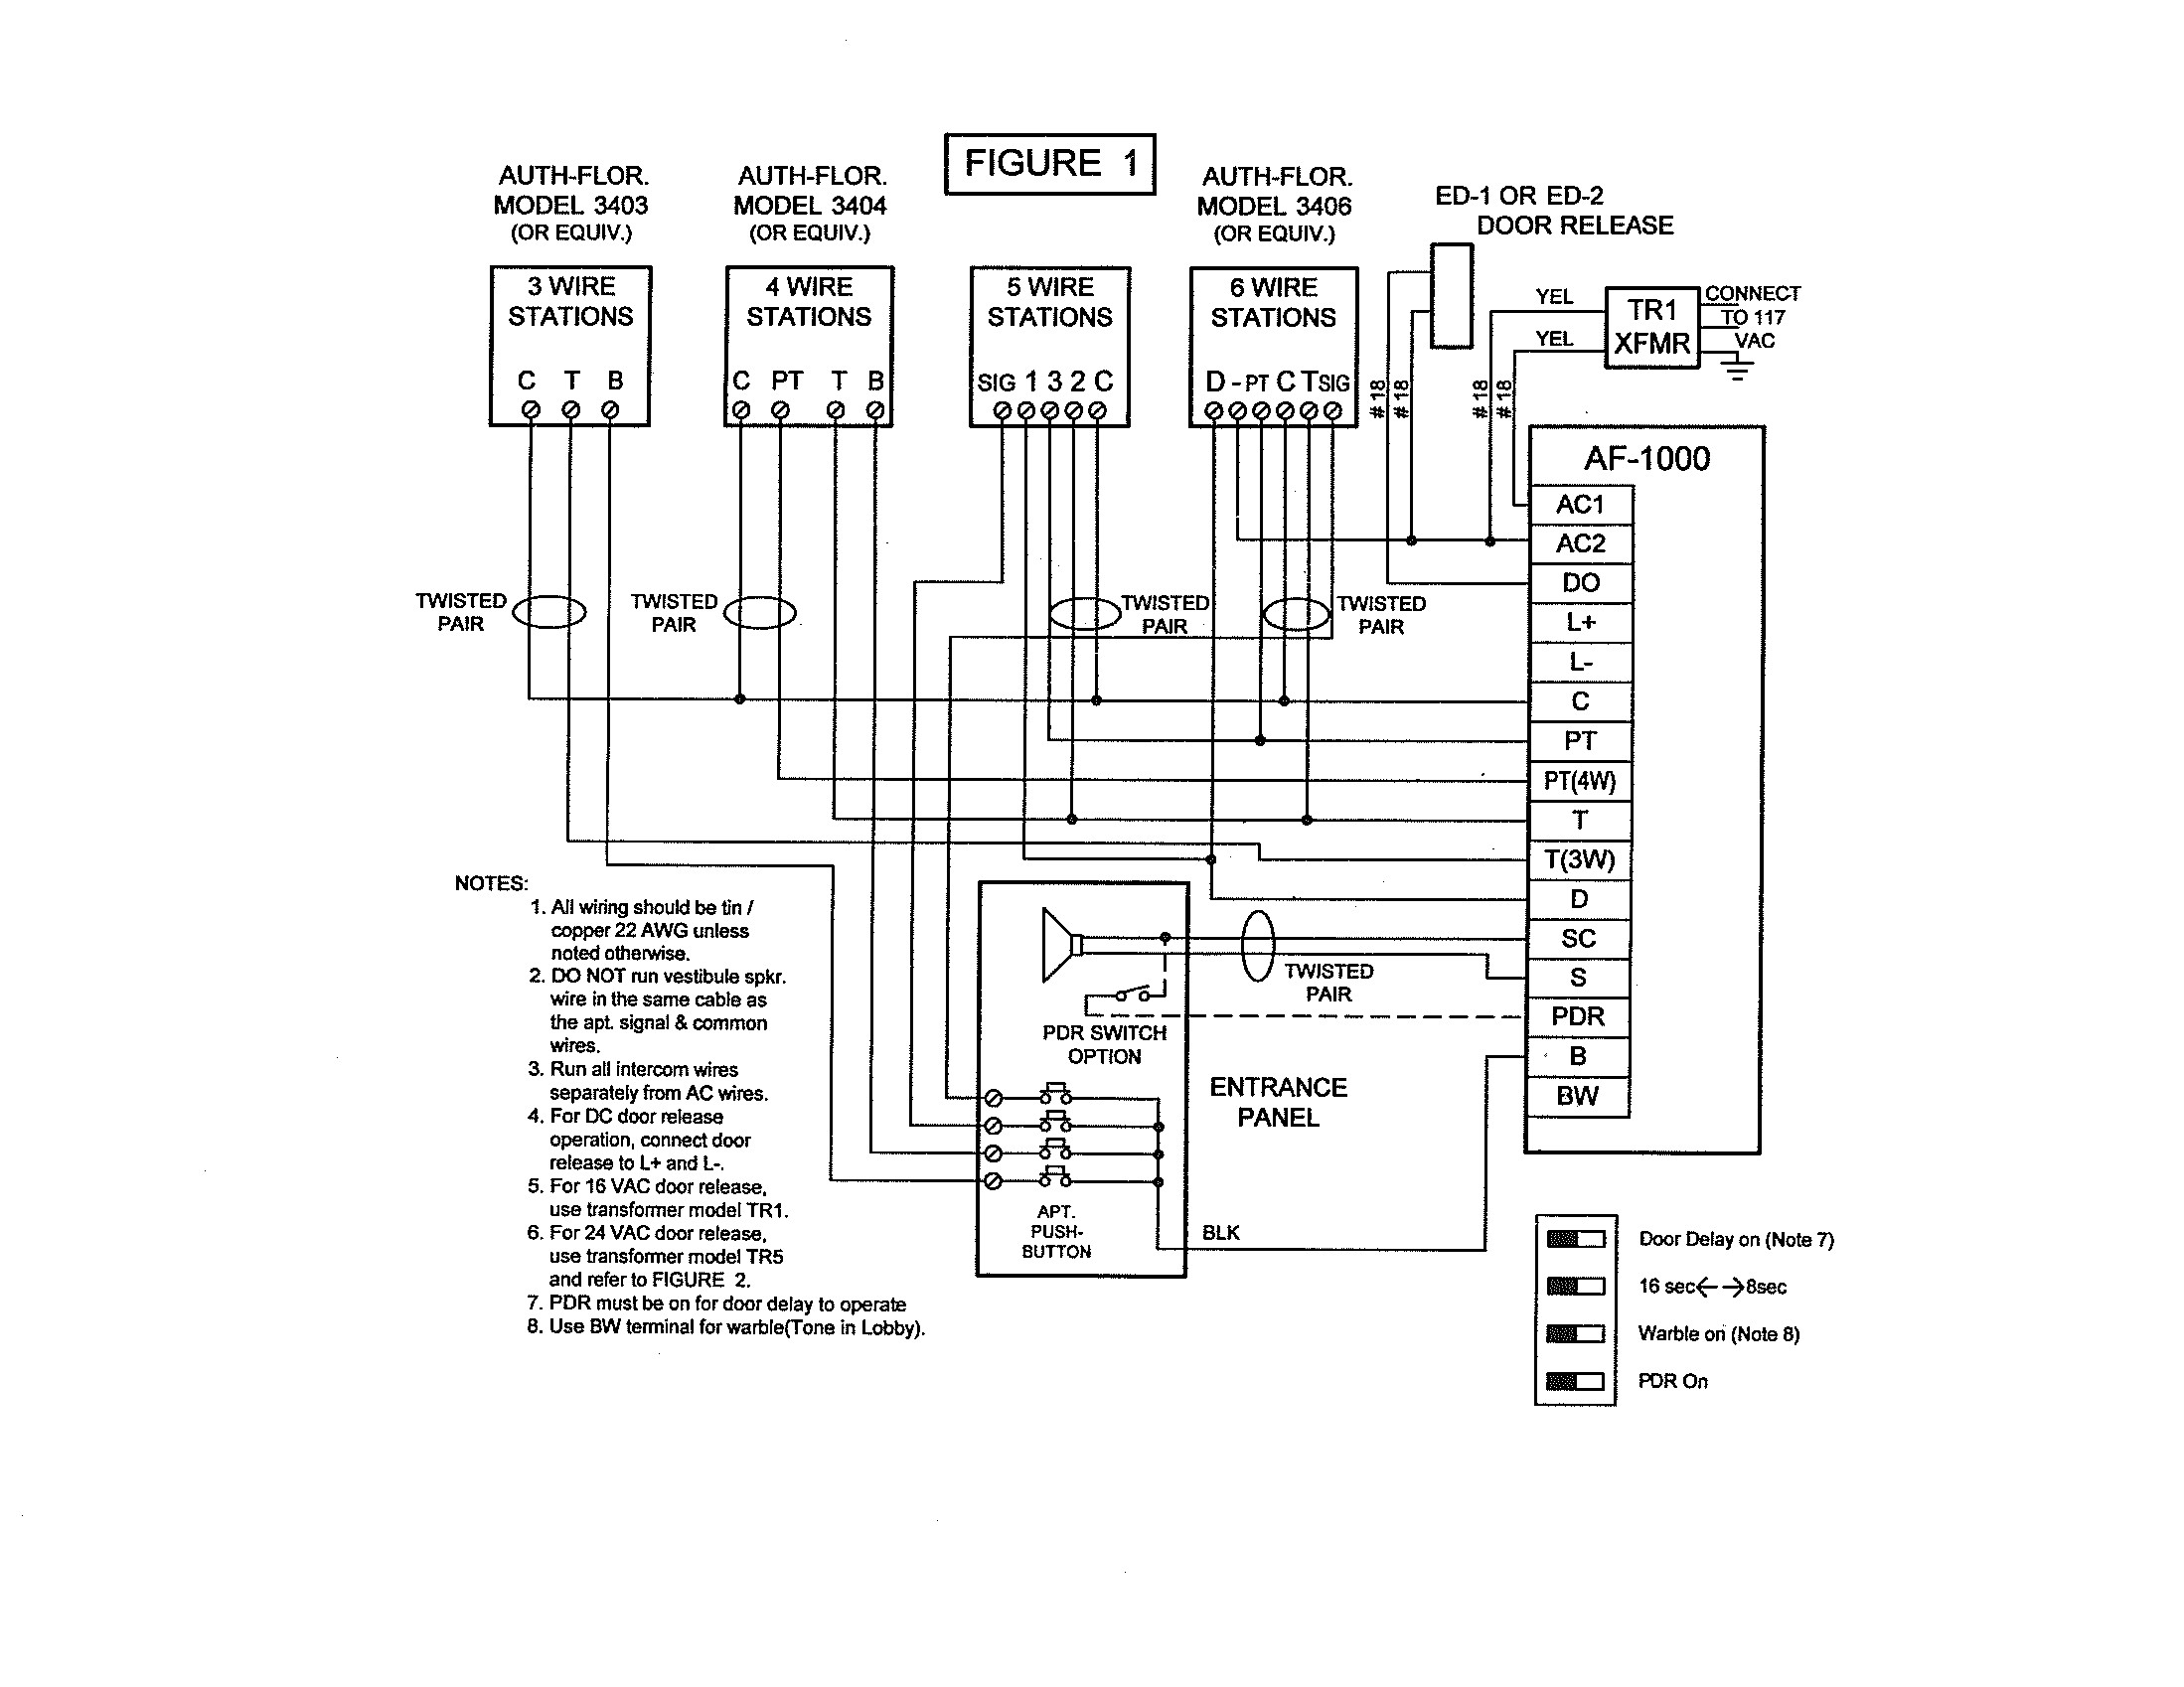 Pacific Electronics Af3600 Af 3600 Transfer Relay Unit Wiring A Switch And Schematic Combination Diagram